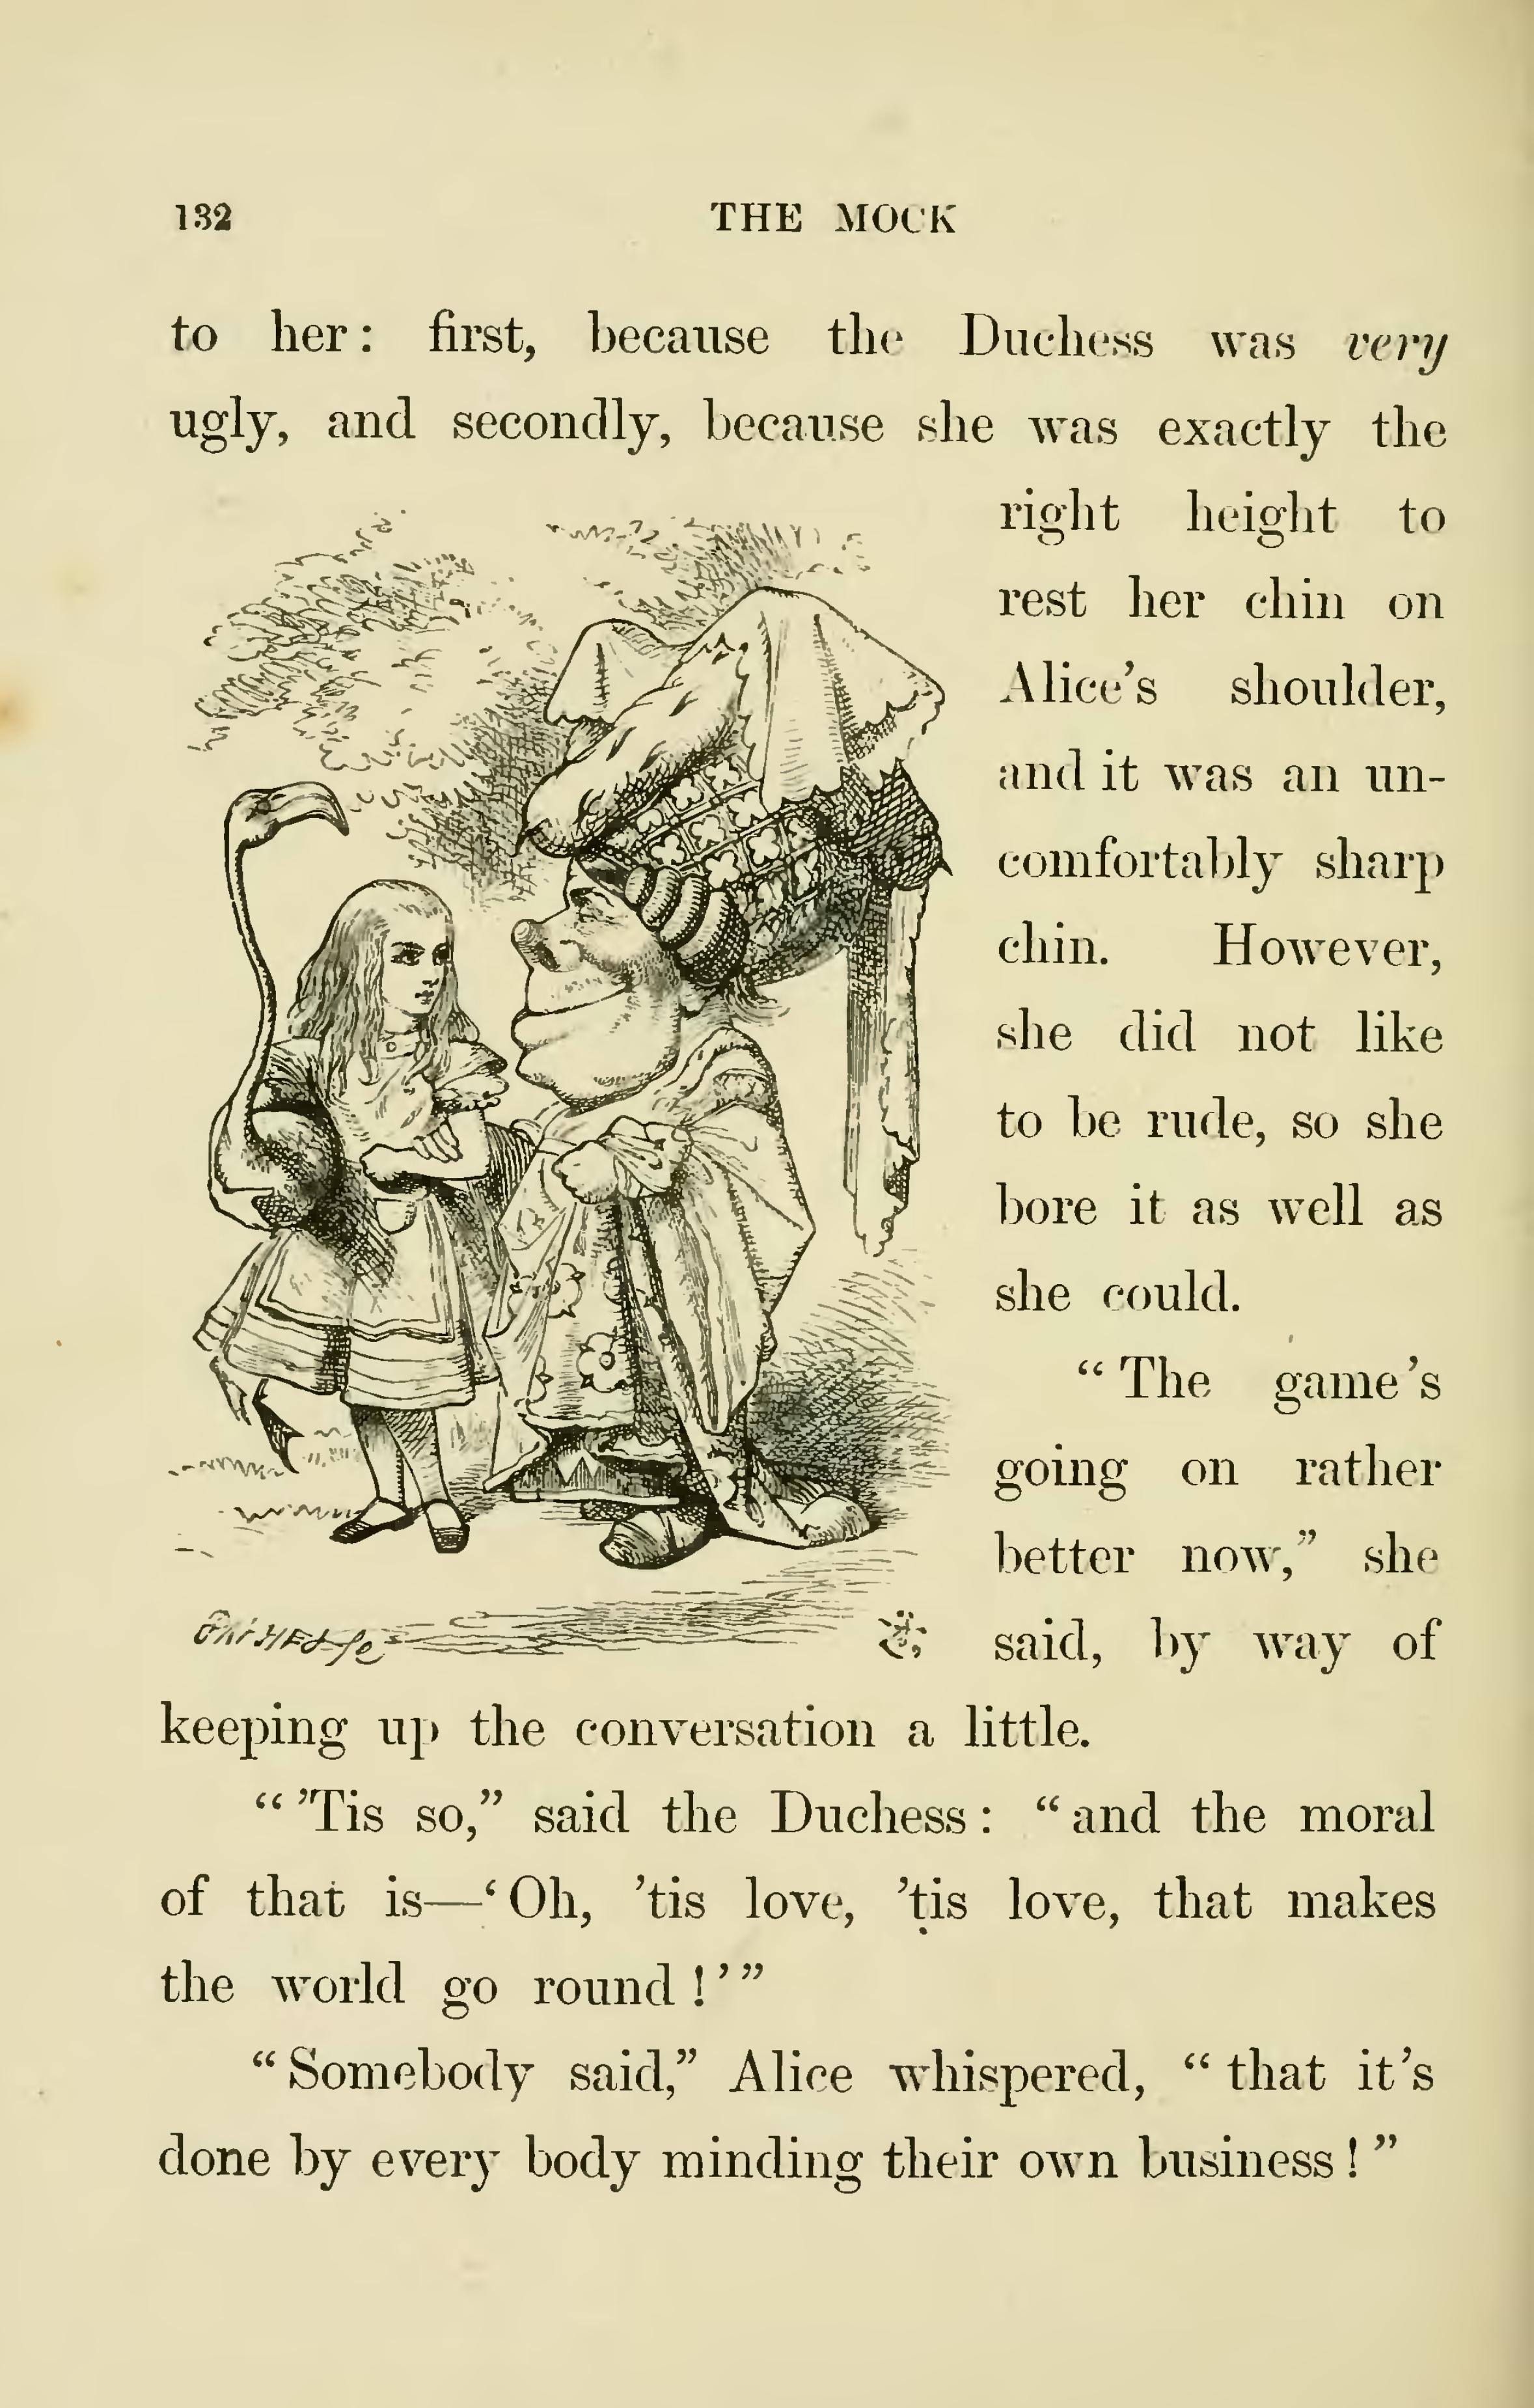 an analysis of the novel alices adventures in wonderland by lewis carroll Alice in wonderland: biography: lewis carroll, free study guides and book notes including comprehensive chapter analysis, complete summary analysis, author biography information, character profiles, theme analysis, metaphor analysis, and top ten quotes on classic literature.